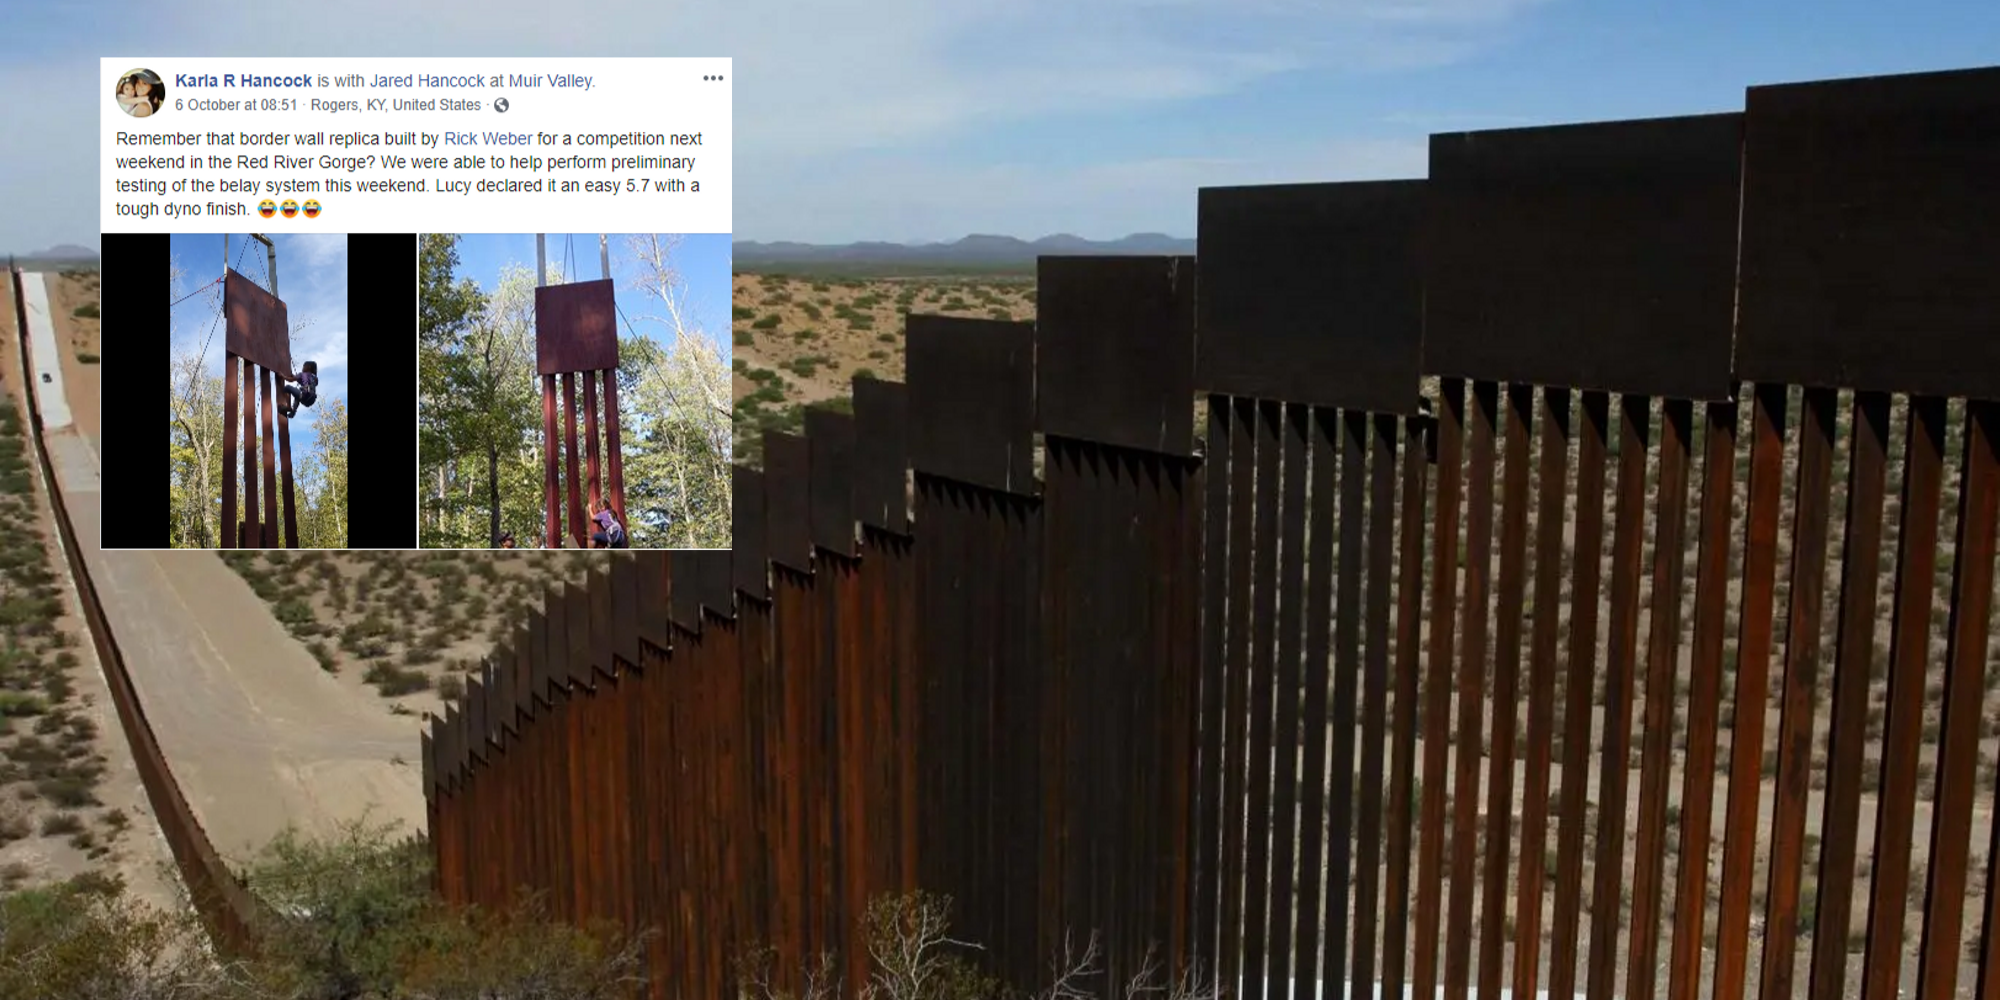 An 8-year-old girl just proved how easy it is to climb Trump's 'impenetrable' border wall